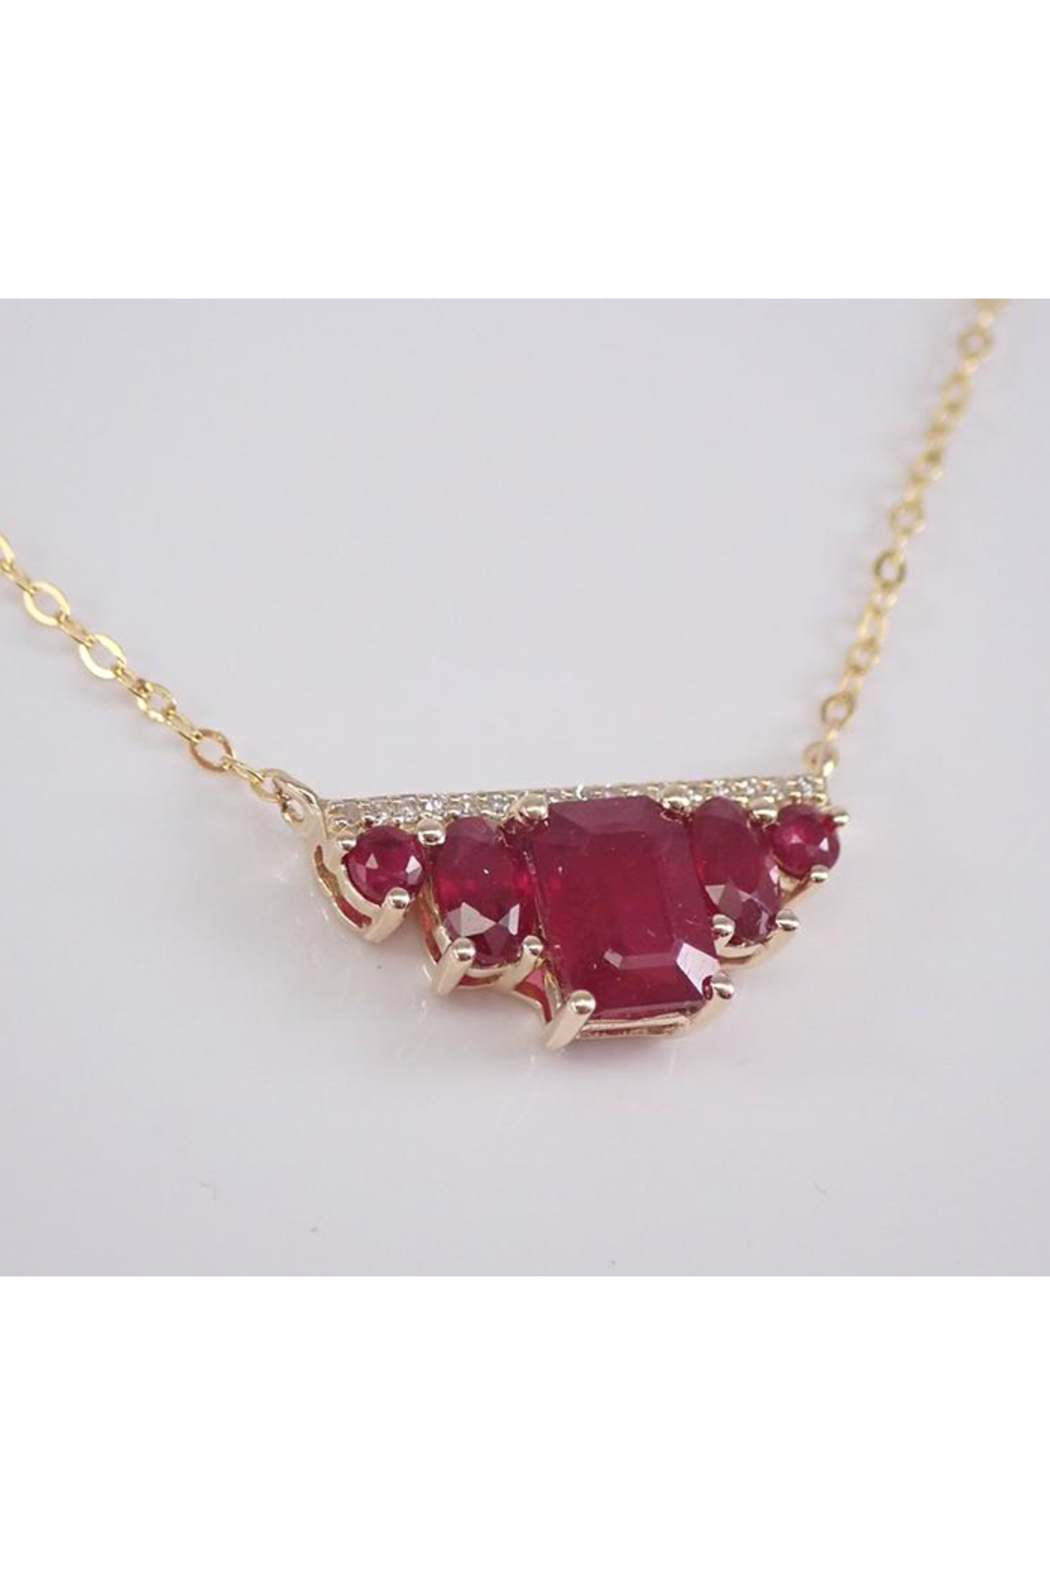 Details about  /18K Rose Yellow Gold 750 Italy Ruby Grape Leaves Vine Charm Pendant 3gr